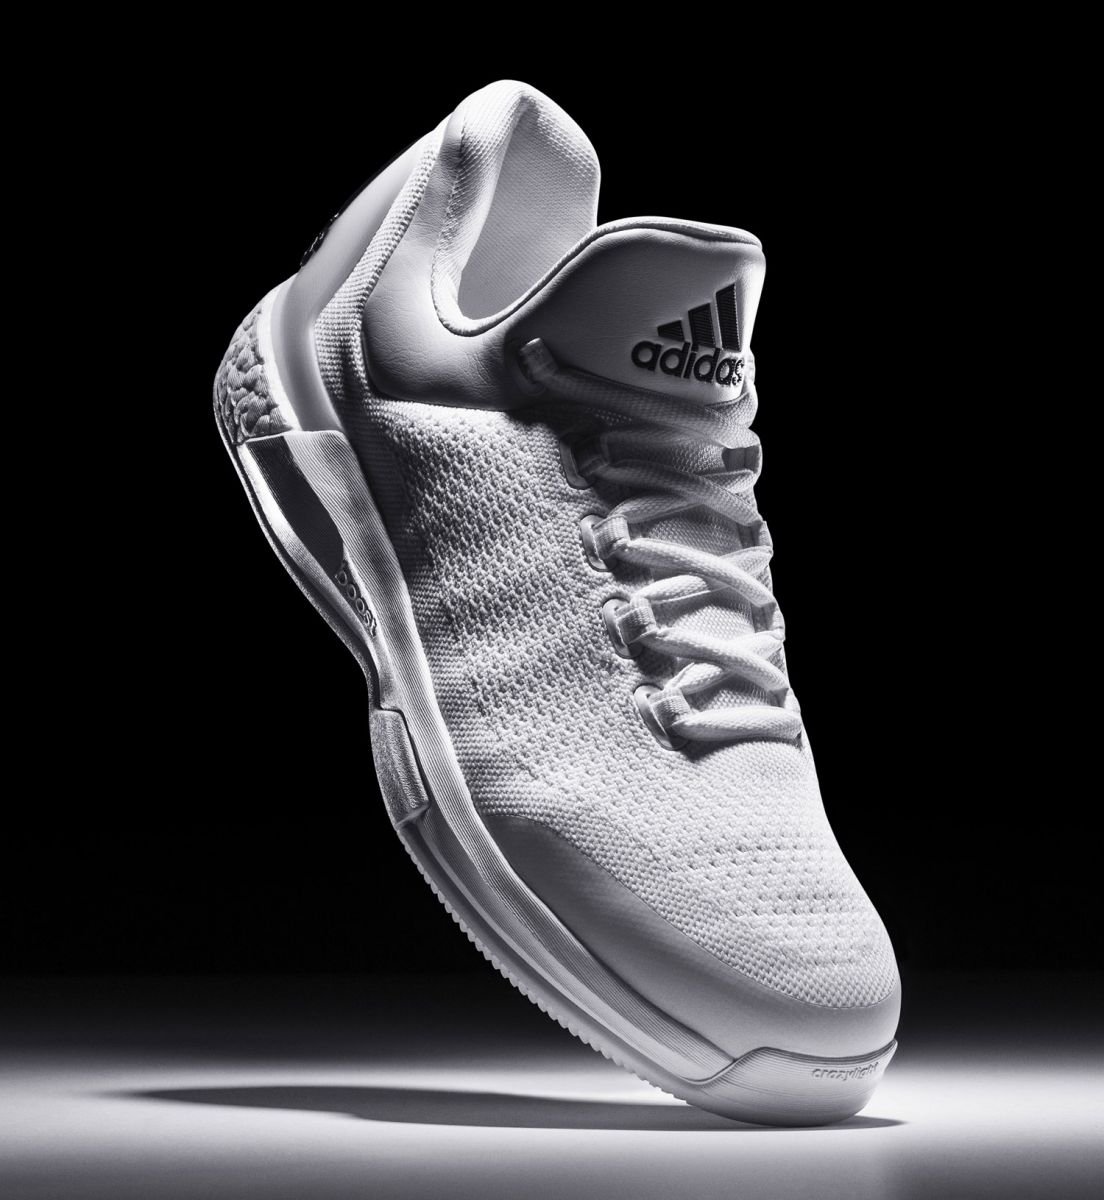 James Harden Under Armour: Adidas Is Only Releasing 100 Pairs Of These James Harden